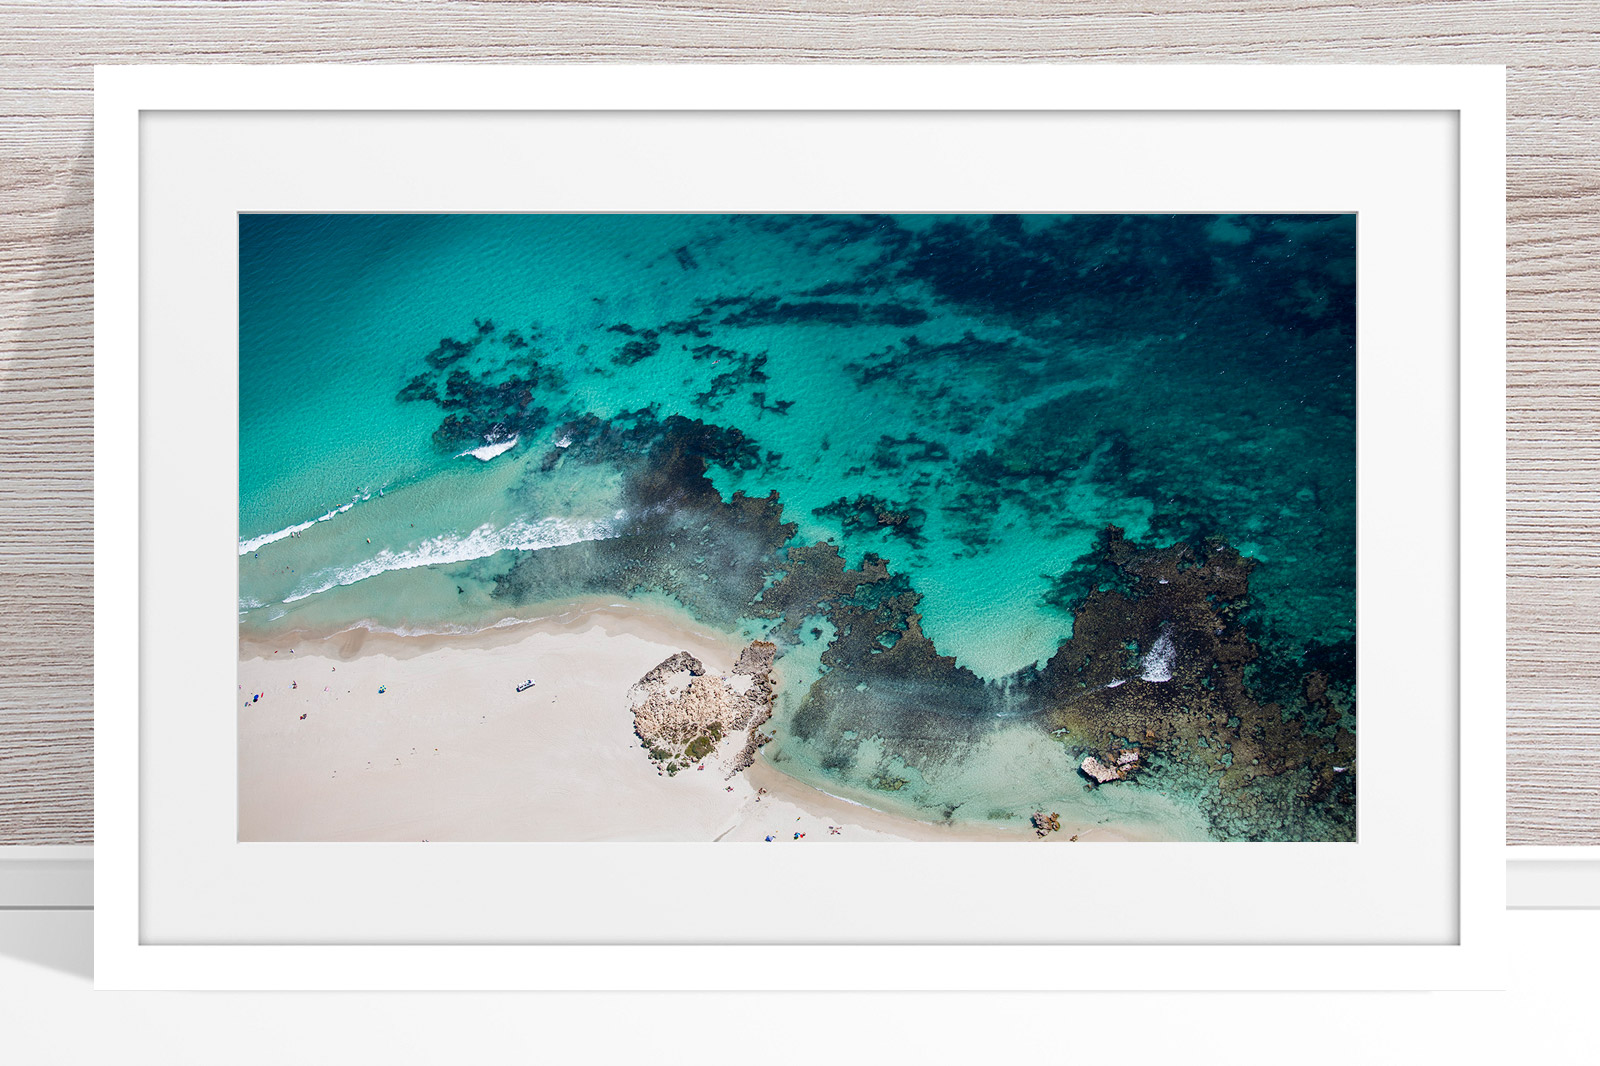 039 - Jason Mazur - 'Trigg Point Aerial' White Frame